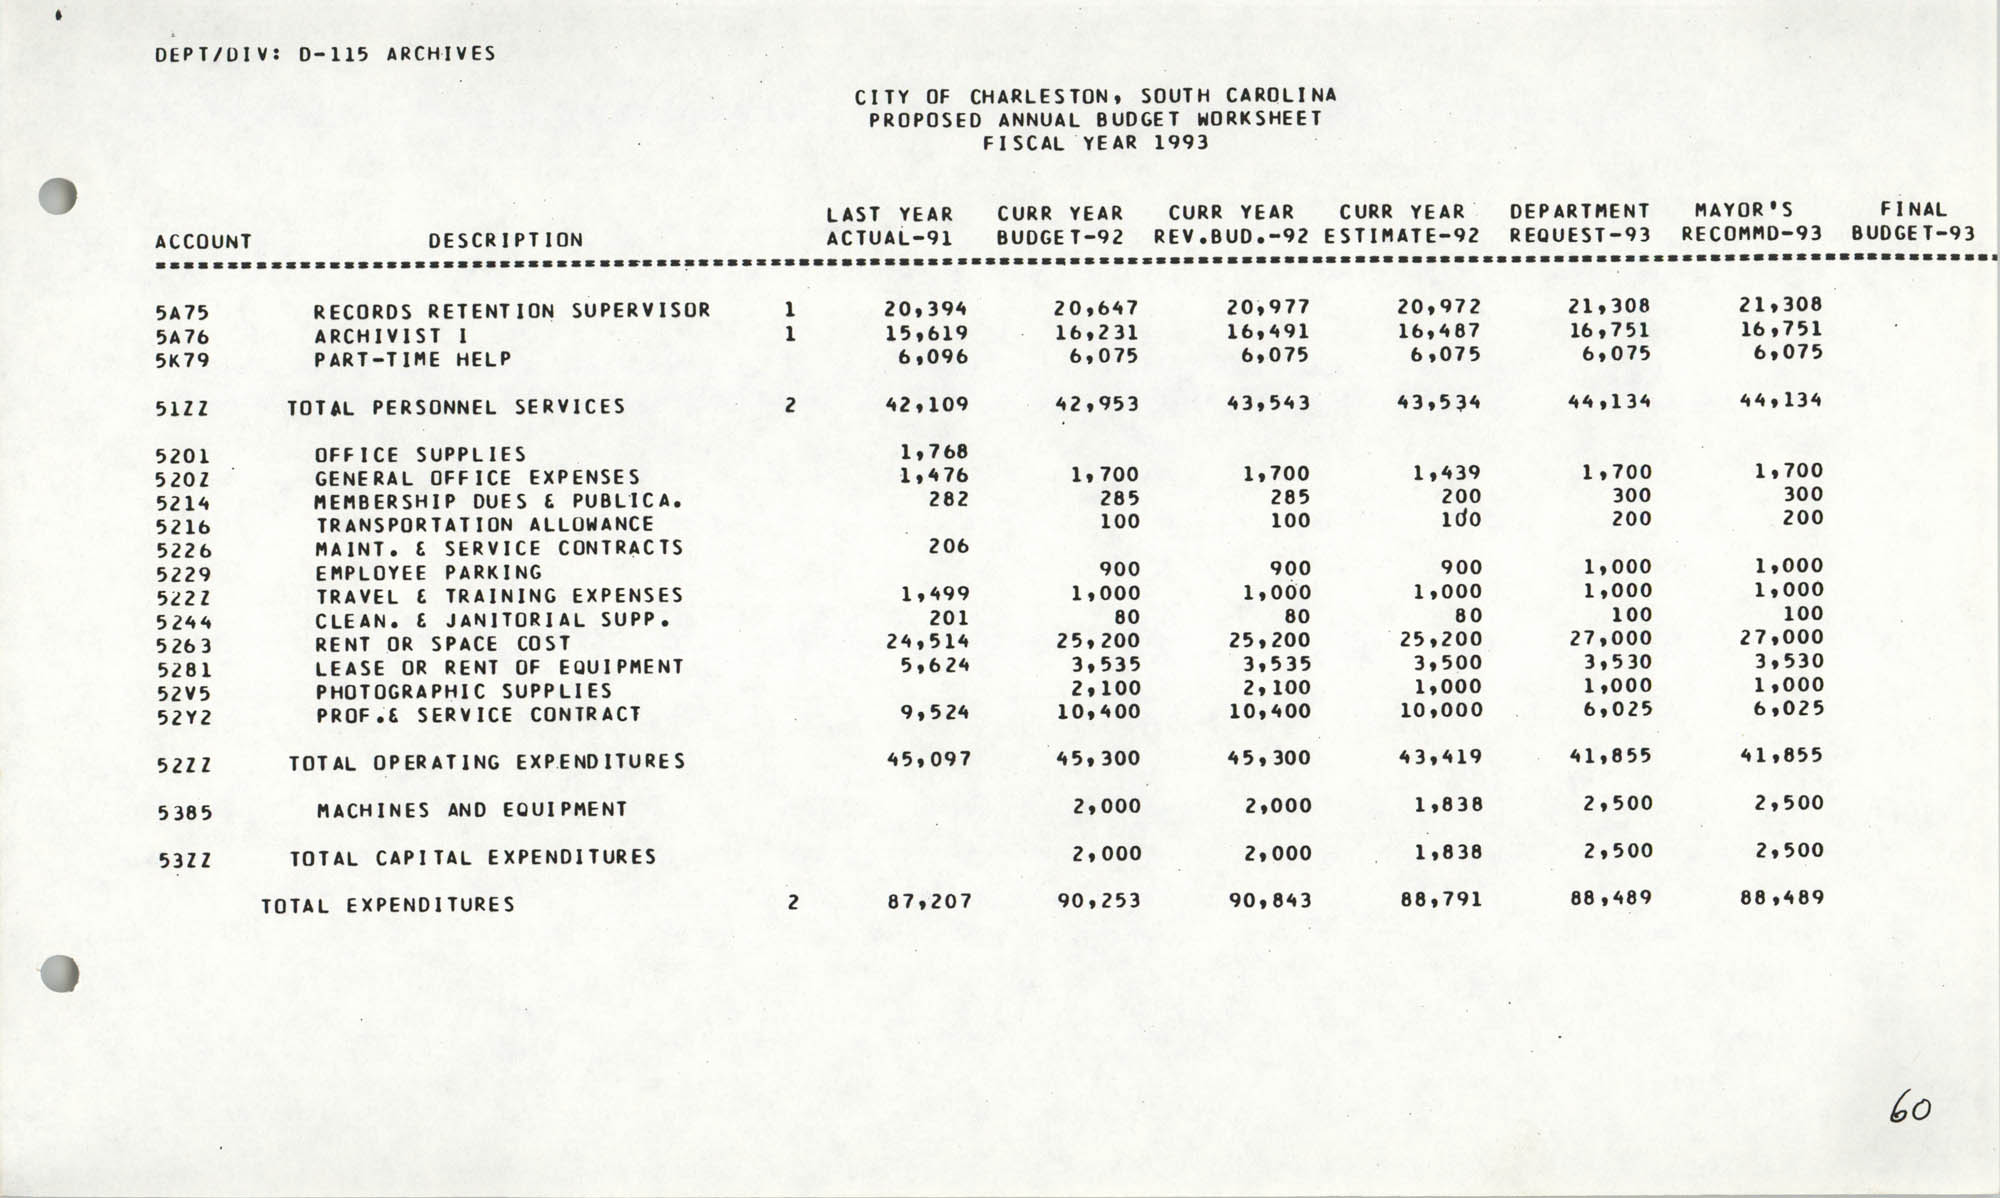 The City Council of Charleston, South Carolina, 1993 Budget, Page 60